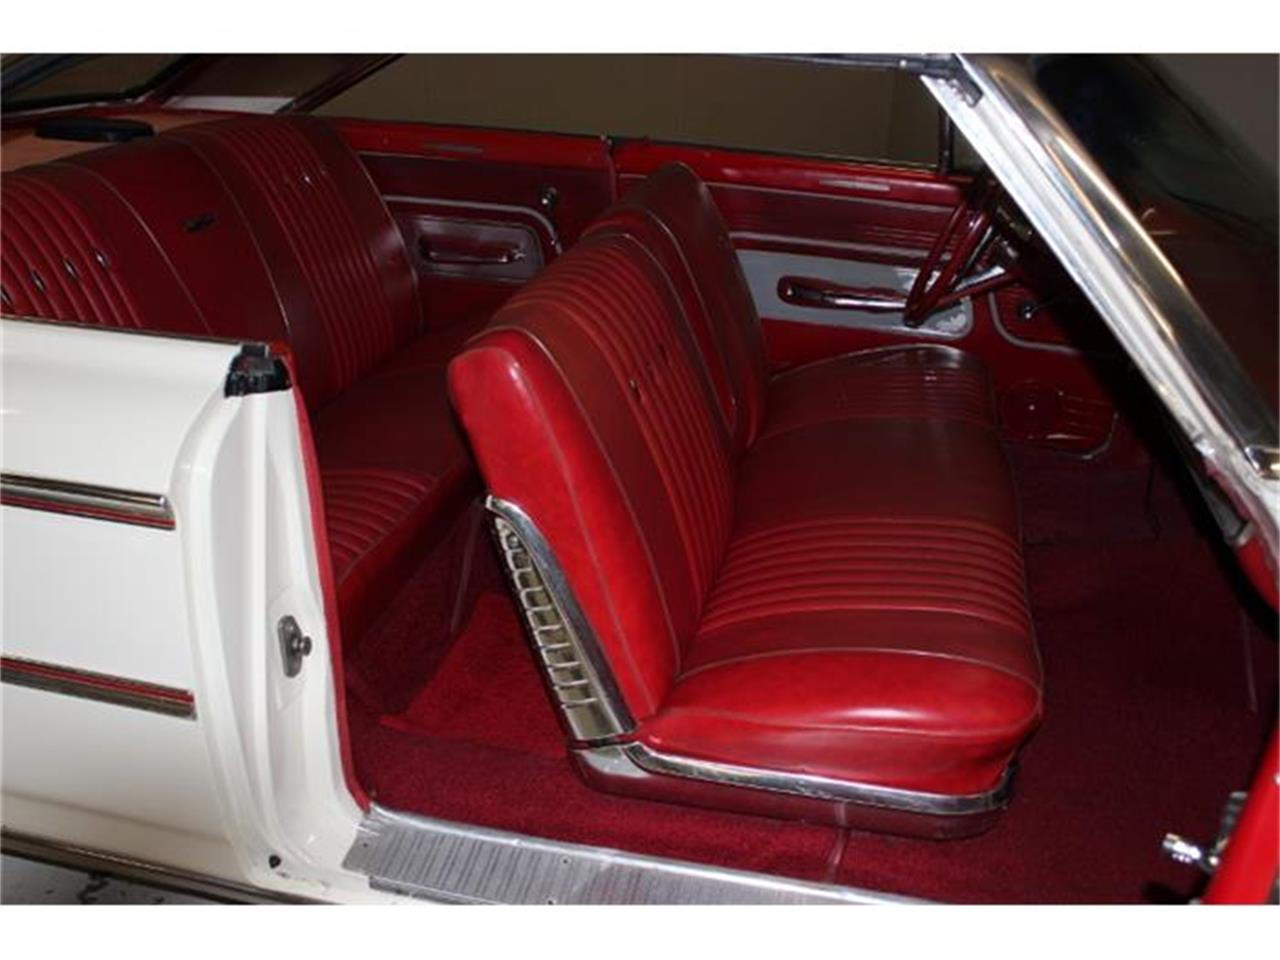 Large Picture of '63 Galaxie 500 located in Lillington North Carolina - $30,000.00 - GPFN